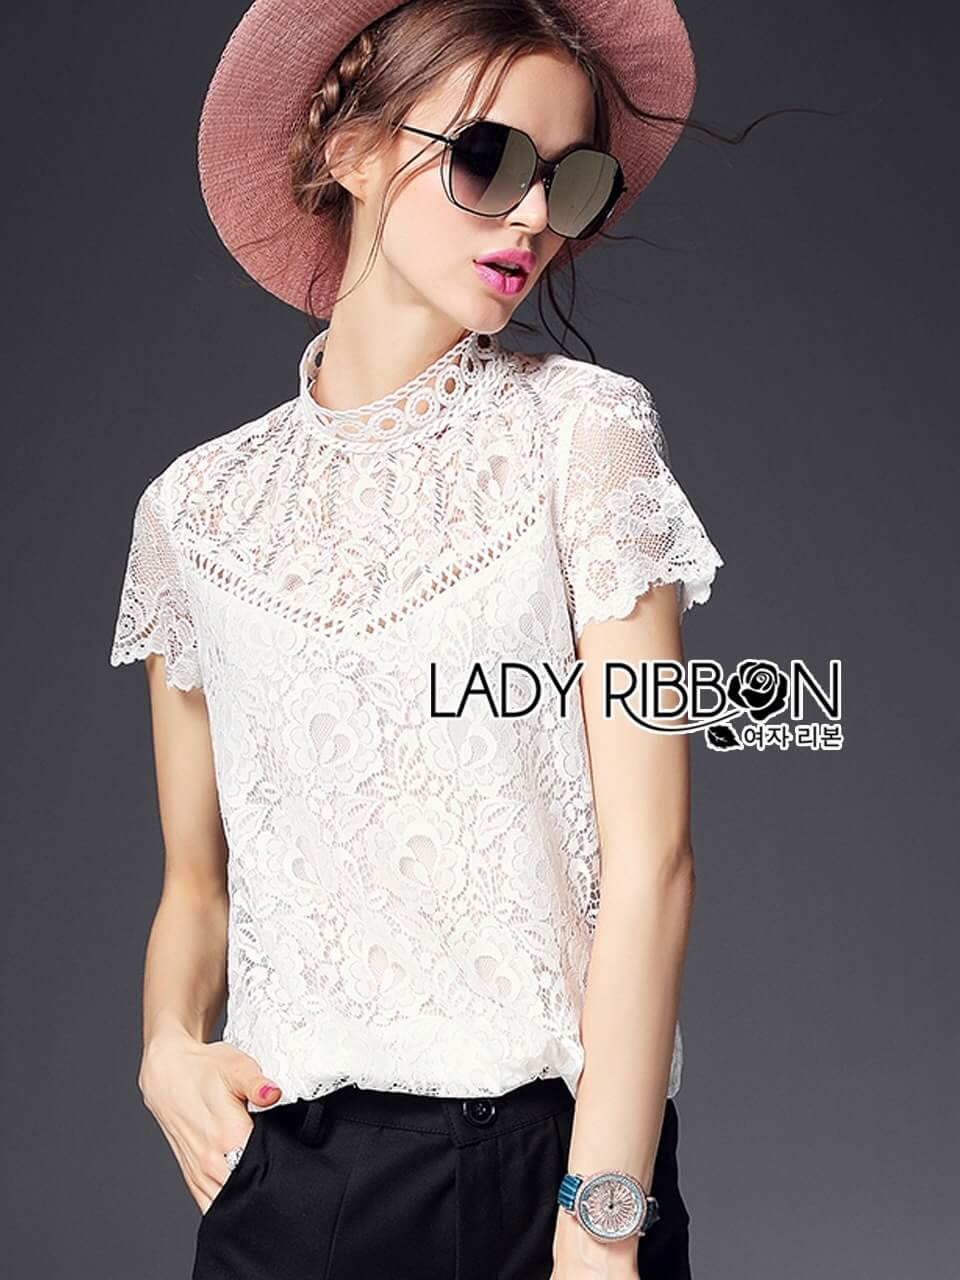 &#x1F380 Lady Ribbon's Made &#x1F380 Lady Isabelle Smart Casual High-Neck White Lace Top